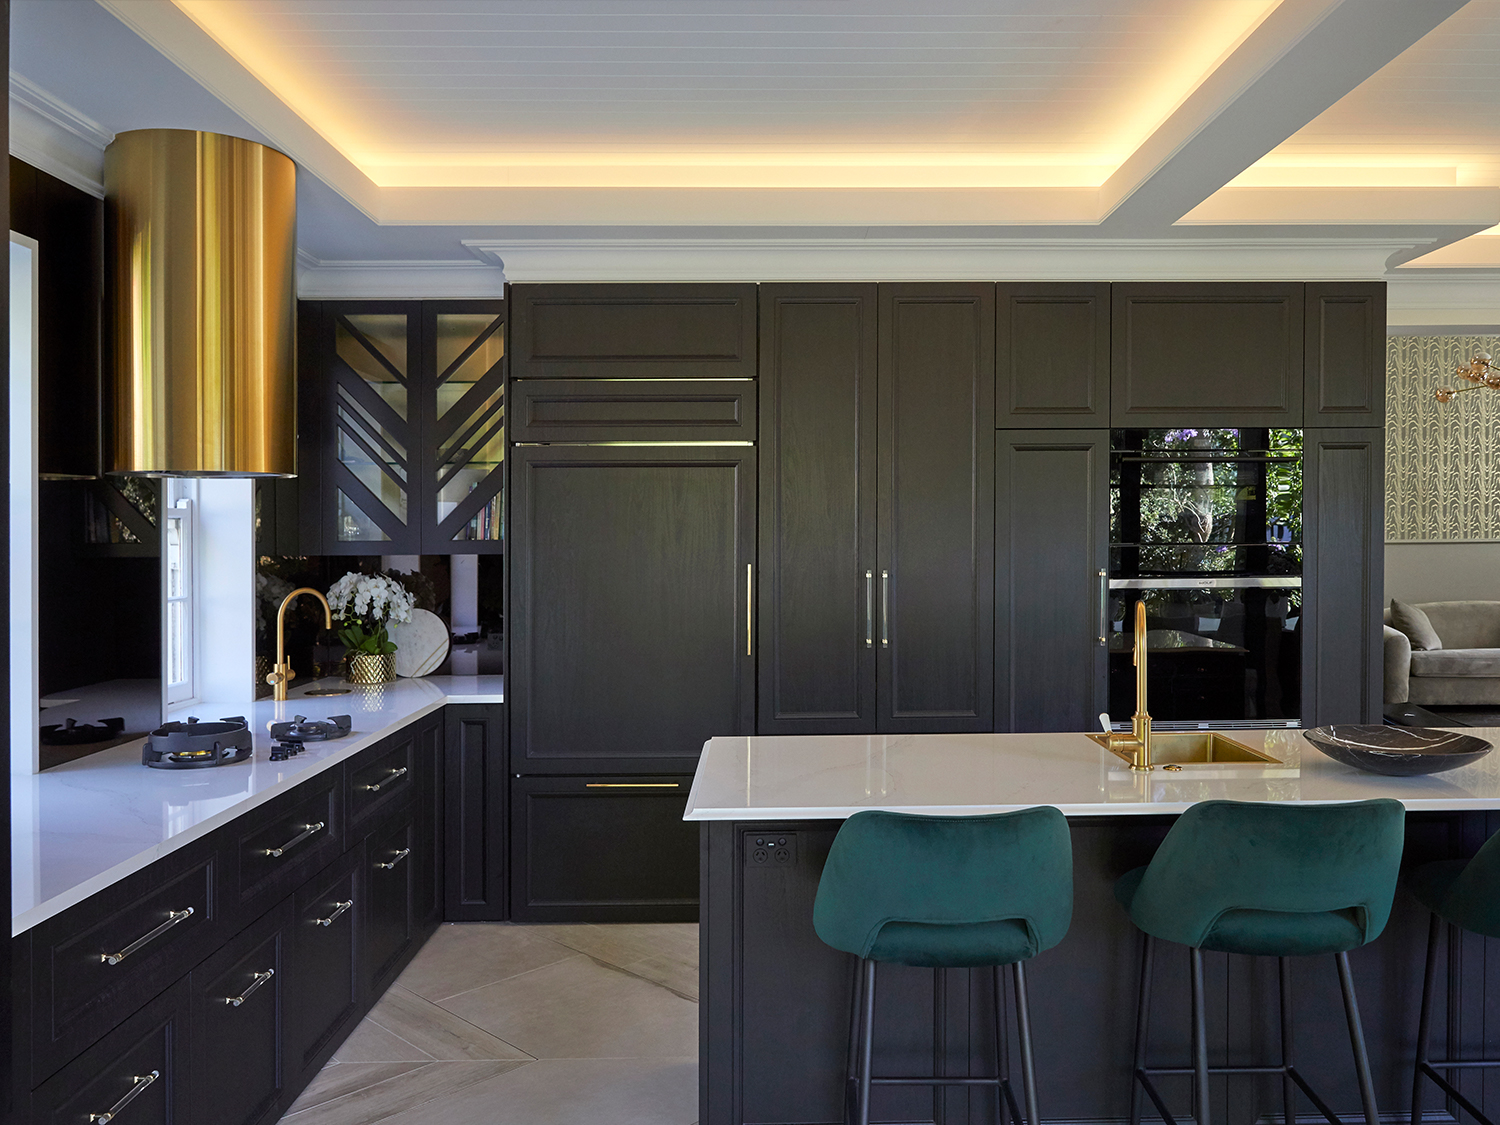 Image of Cosentino Greenwich Sarner Road7835 1 1 in Greenwich Kitchen - A showpiece kitchen for a family who loves to entertain - Cosentino